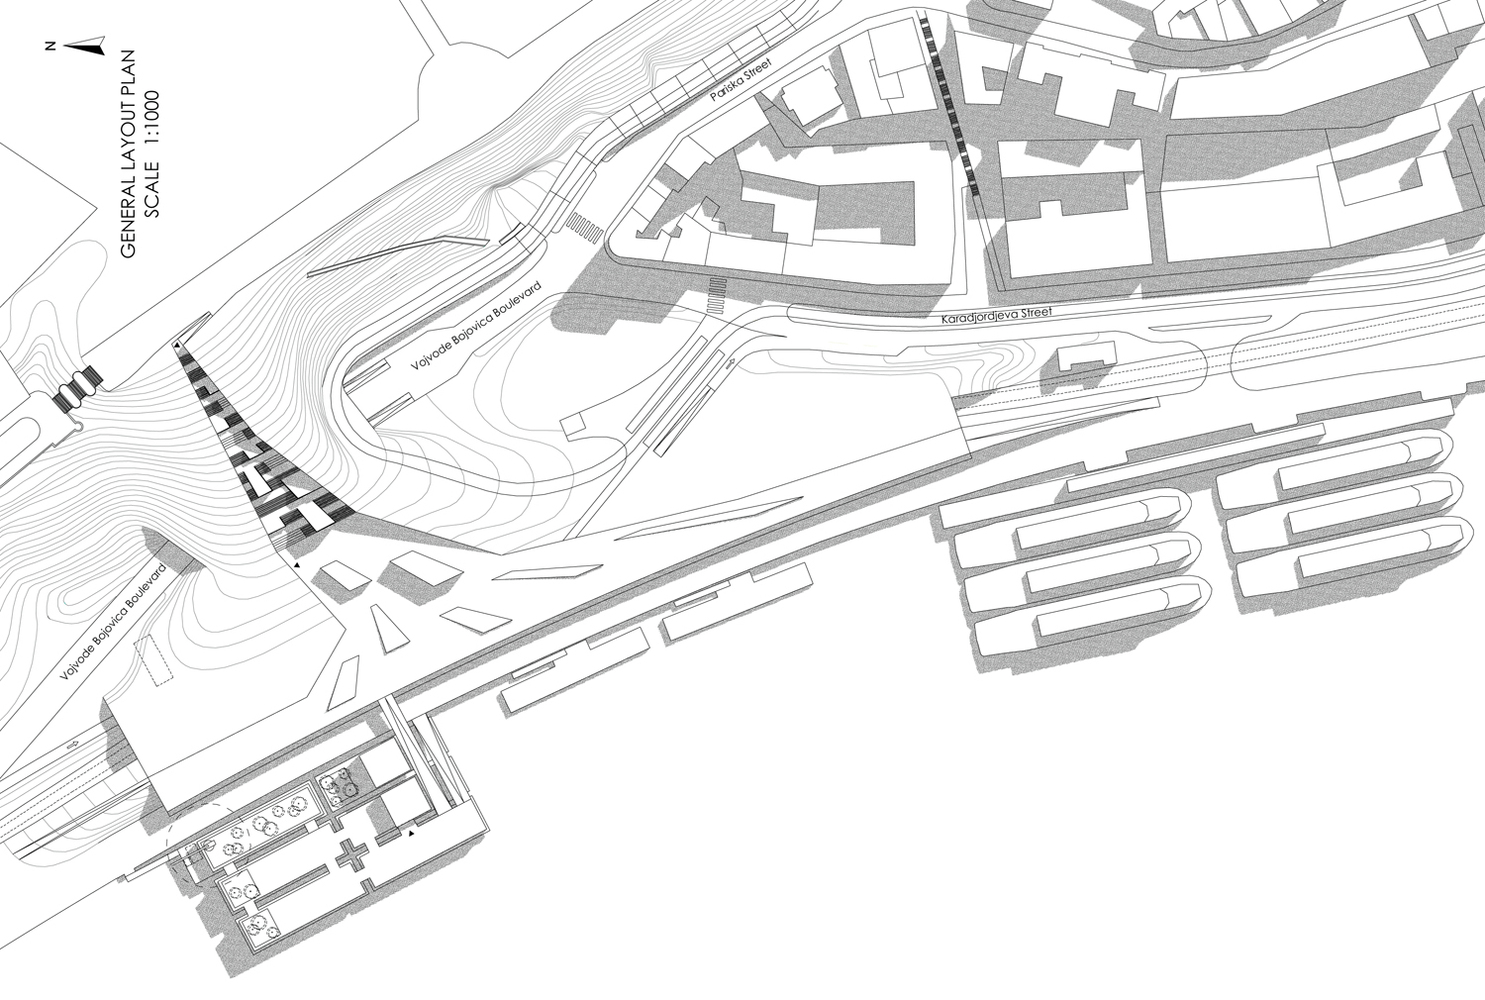 Gallery of Beton Hala Waterfront Competition proposal / Pikasch